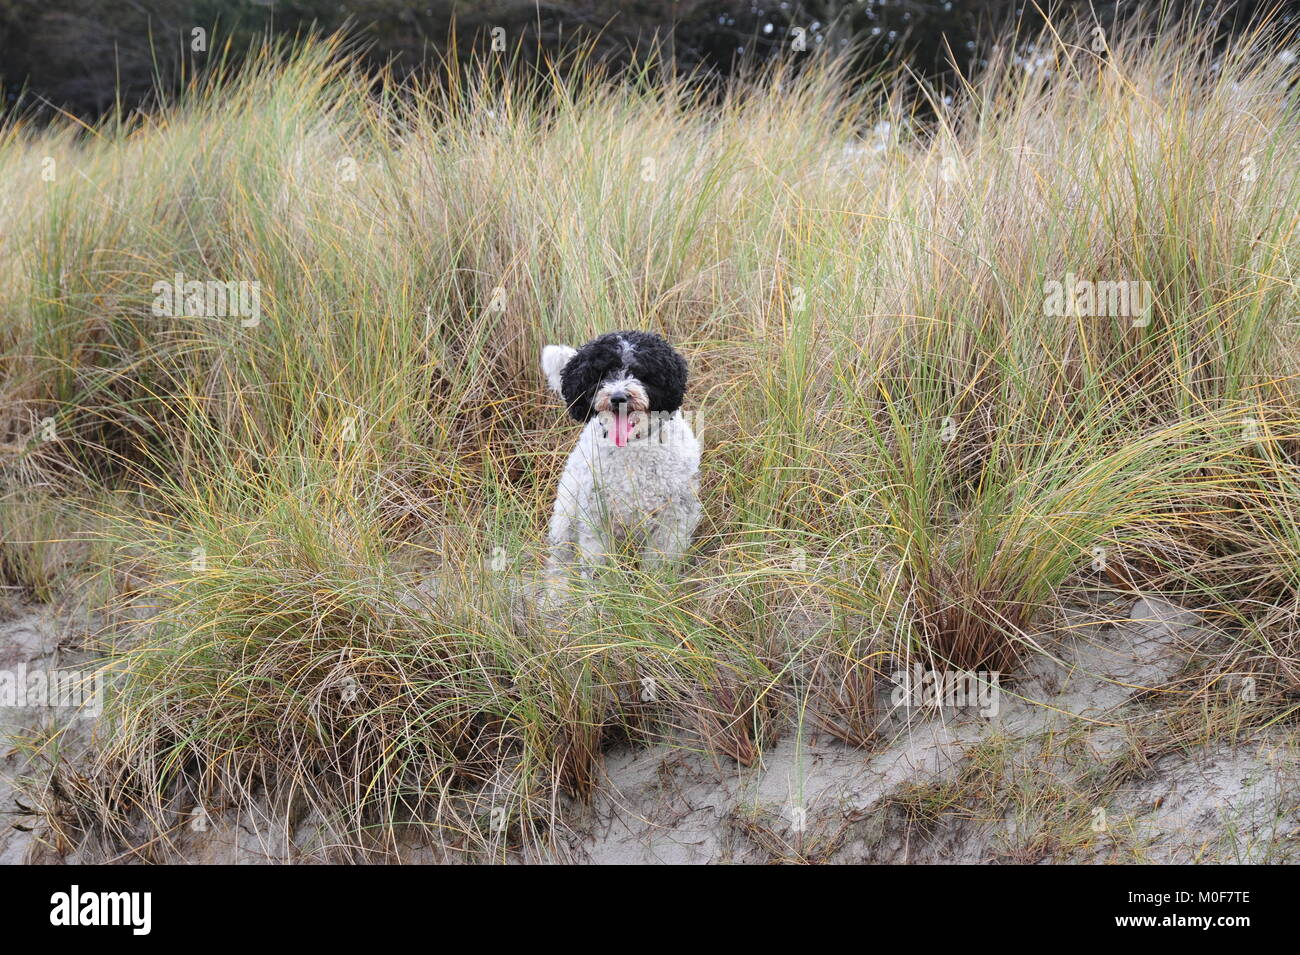 Spanish water dog likes to play in the dunes of the oceans. - Stock Image